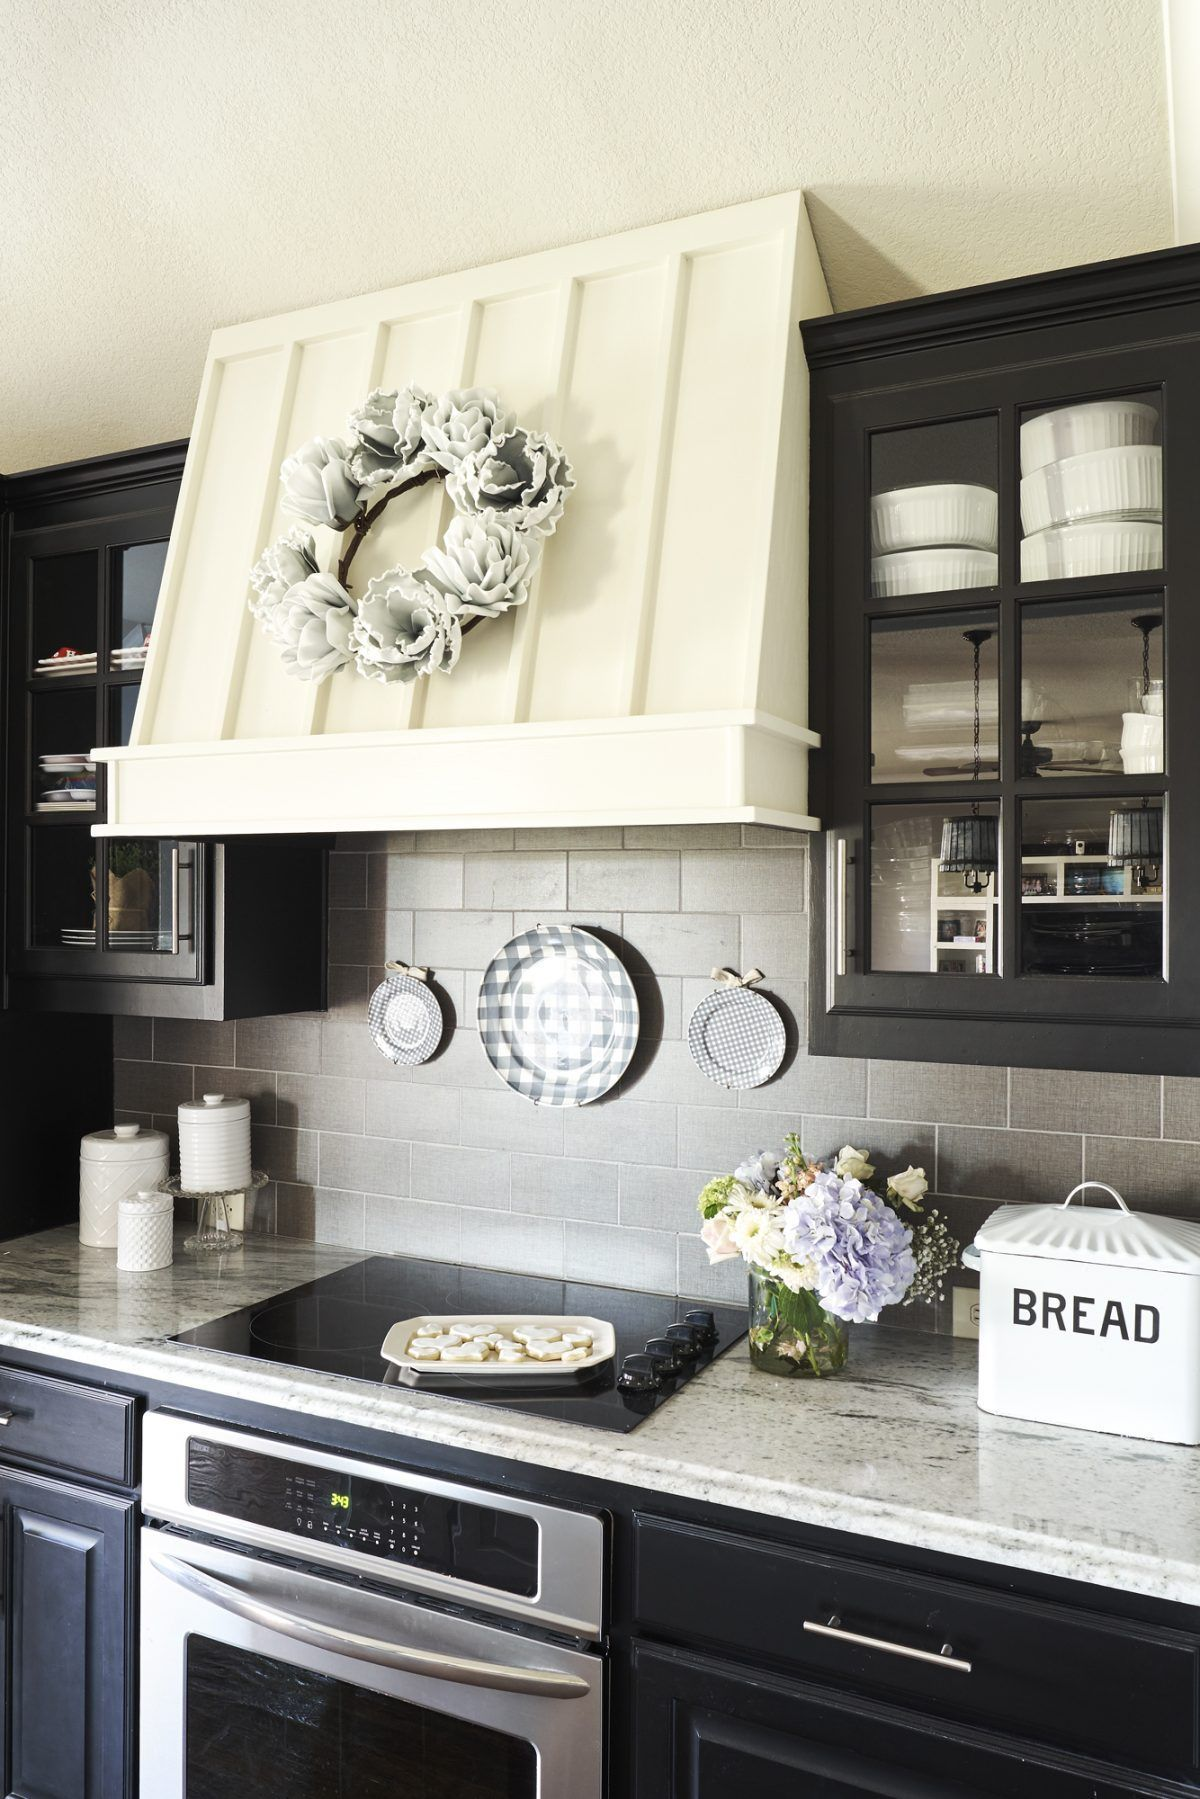 4 New Uses for Old Plates in 2020 Farmhouse style